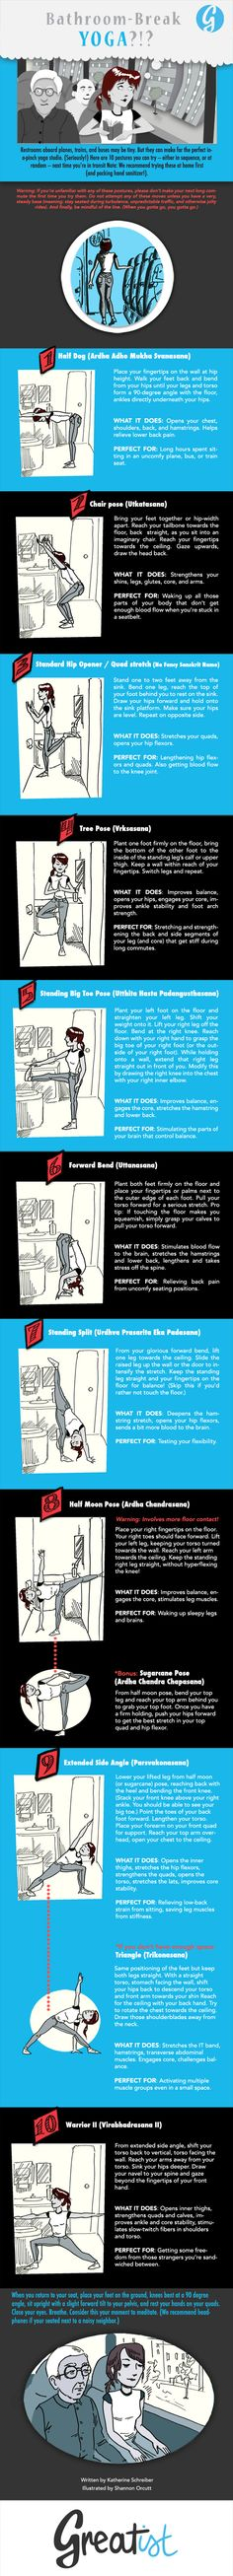 Yoga Poses & Workout : Who says you can't do yoga on a plane, bus, or train? Here are 10 yoga poses you can squeeze in just about anywhere. So pack the sanitizer, and start practicing the moves in this travel-friendly infographic. Yoga Fitness, Fitness Tips, Fitness Motivation, Chakras, Health And Wellness, Health Fitness, Stretching Exercises, Yoga Moves, Stretches